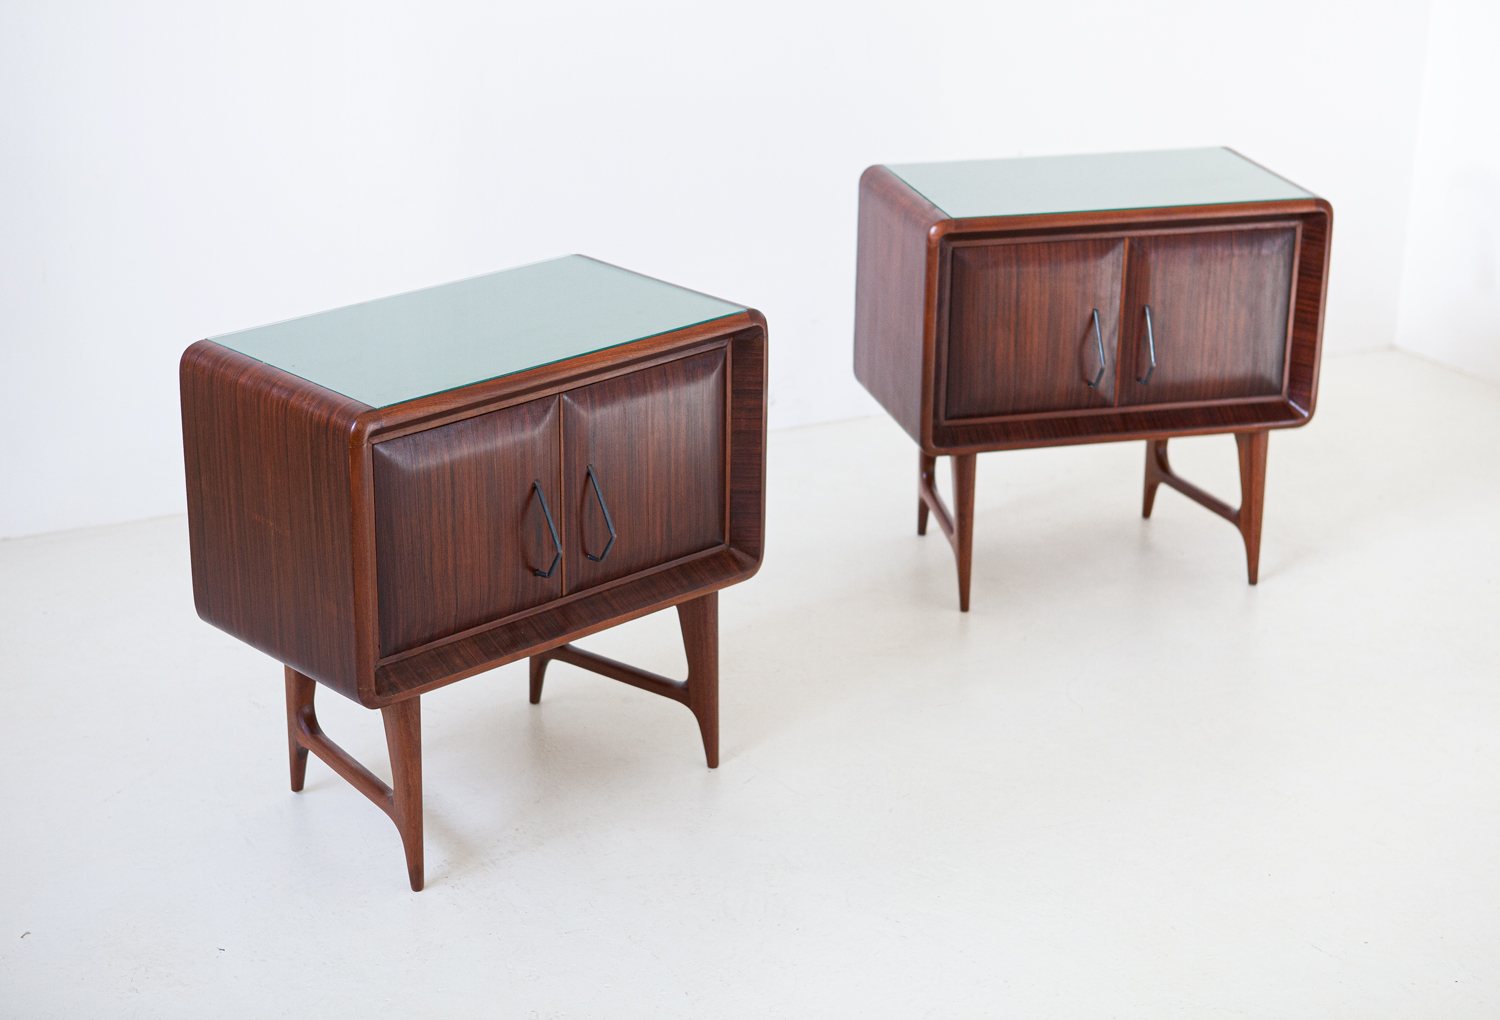 1950s-italian-rosewood-bedside-tables-with-green-glass-top-1-bt83